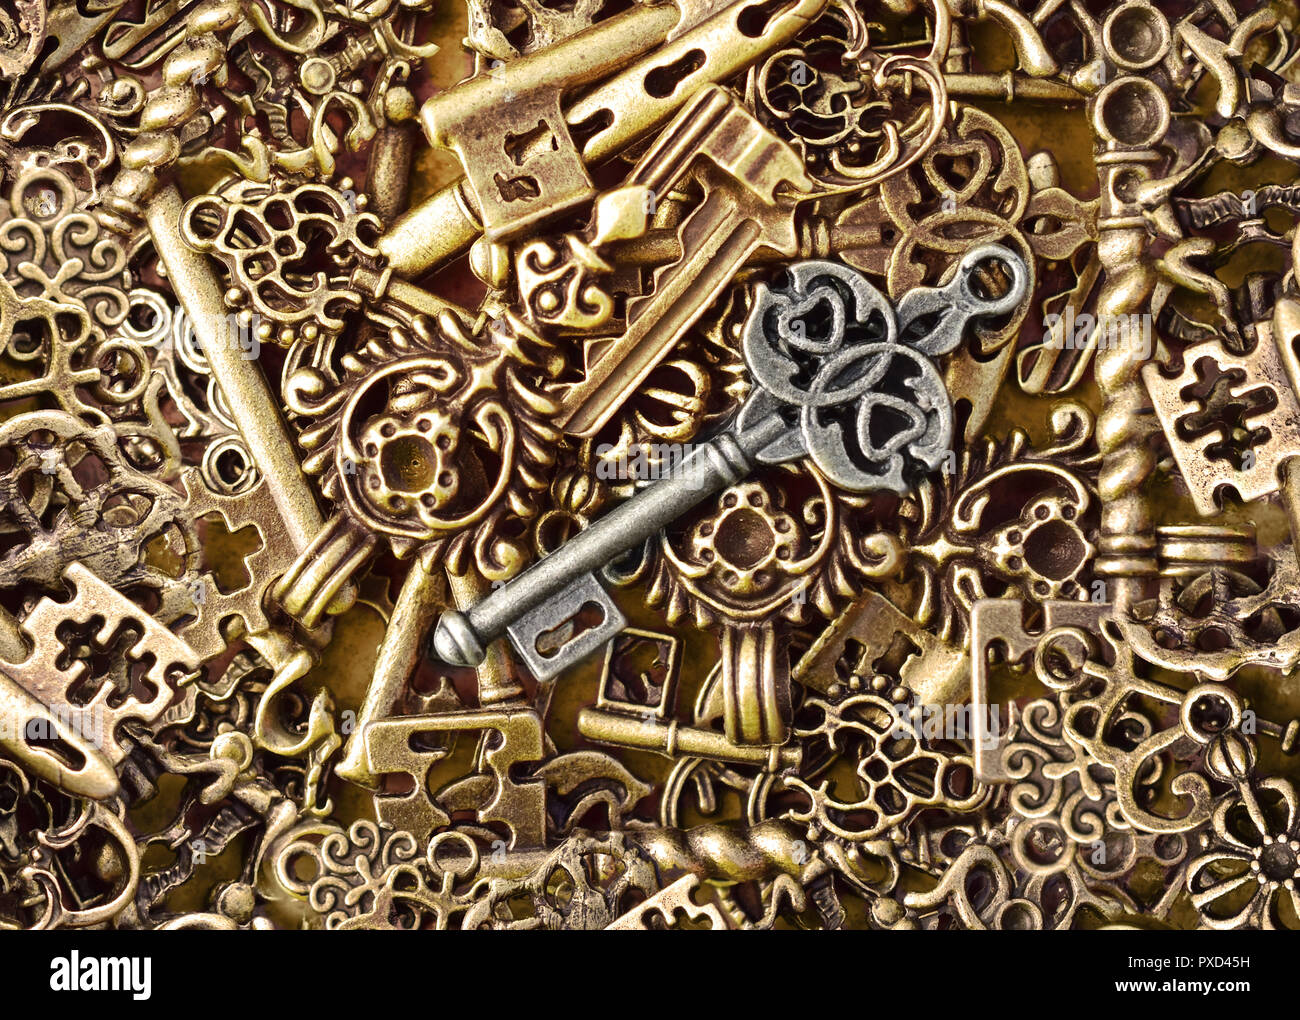 key lock bunch keychain locks unlock sense - Stock Image